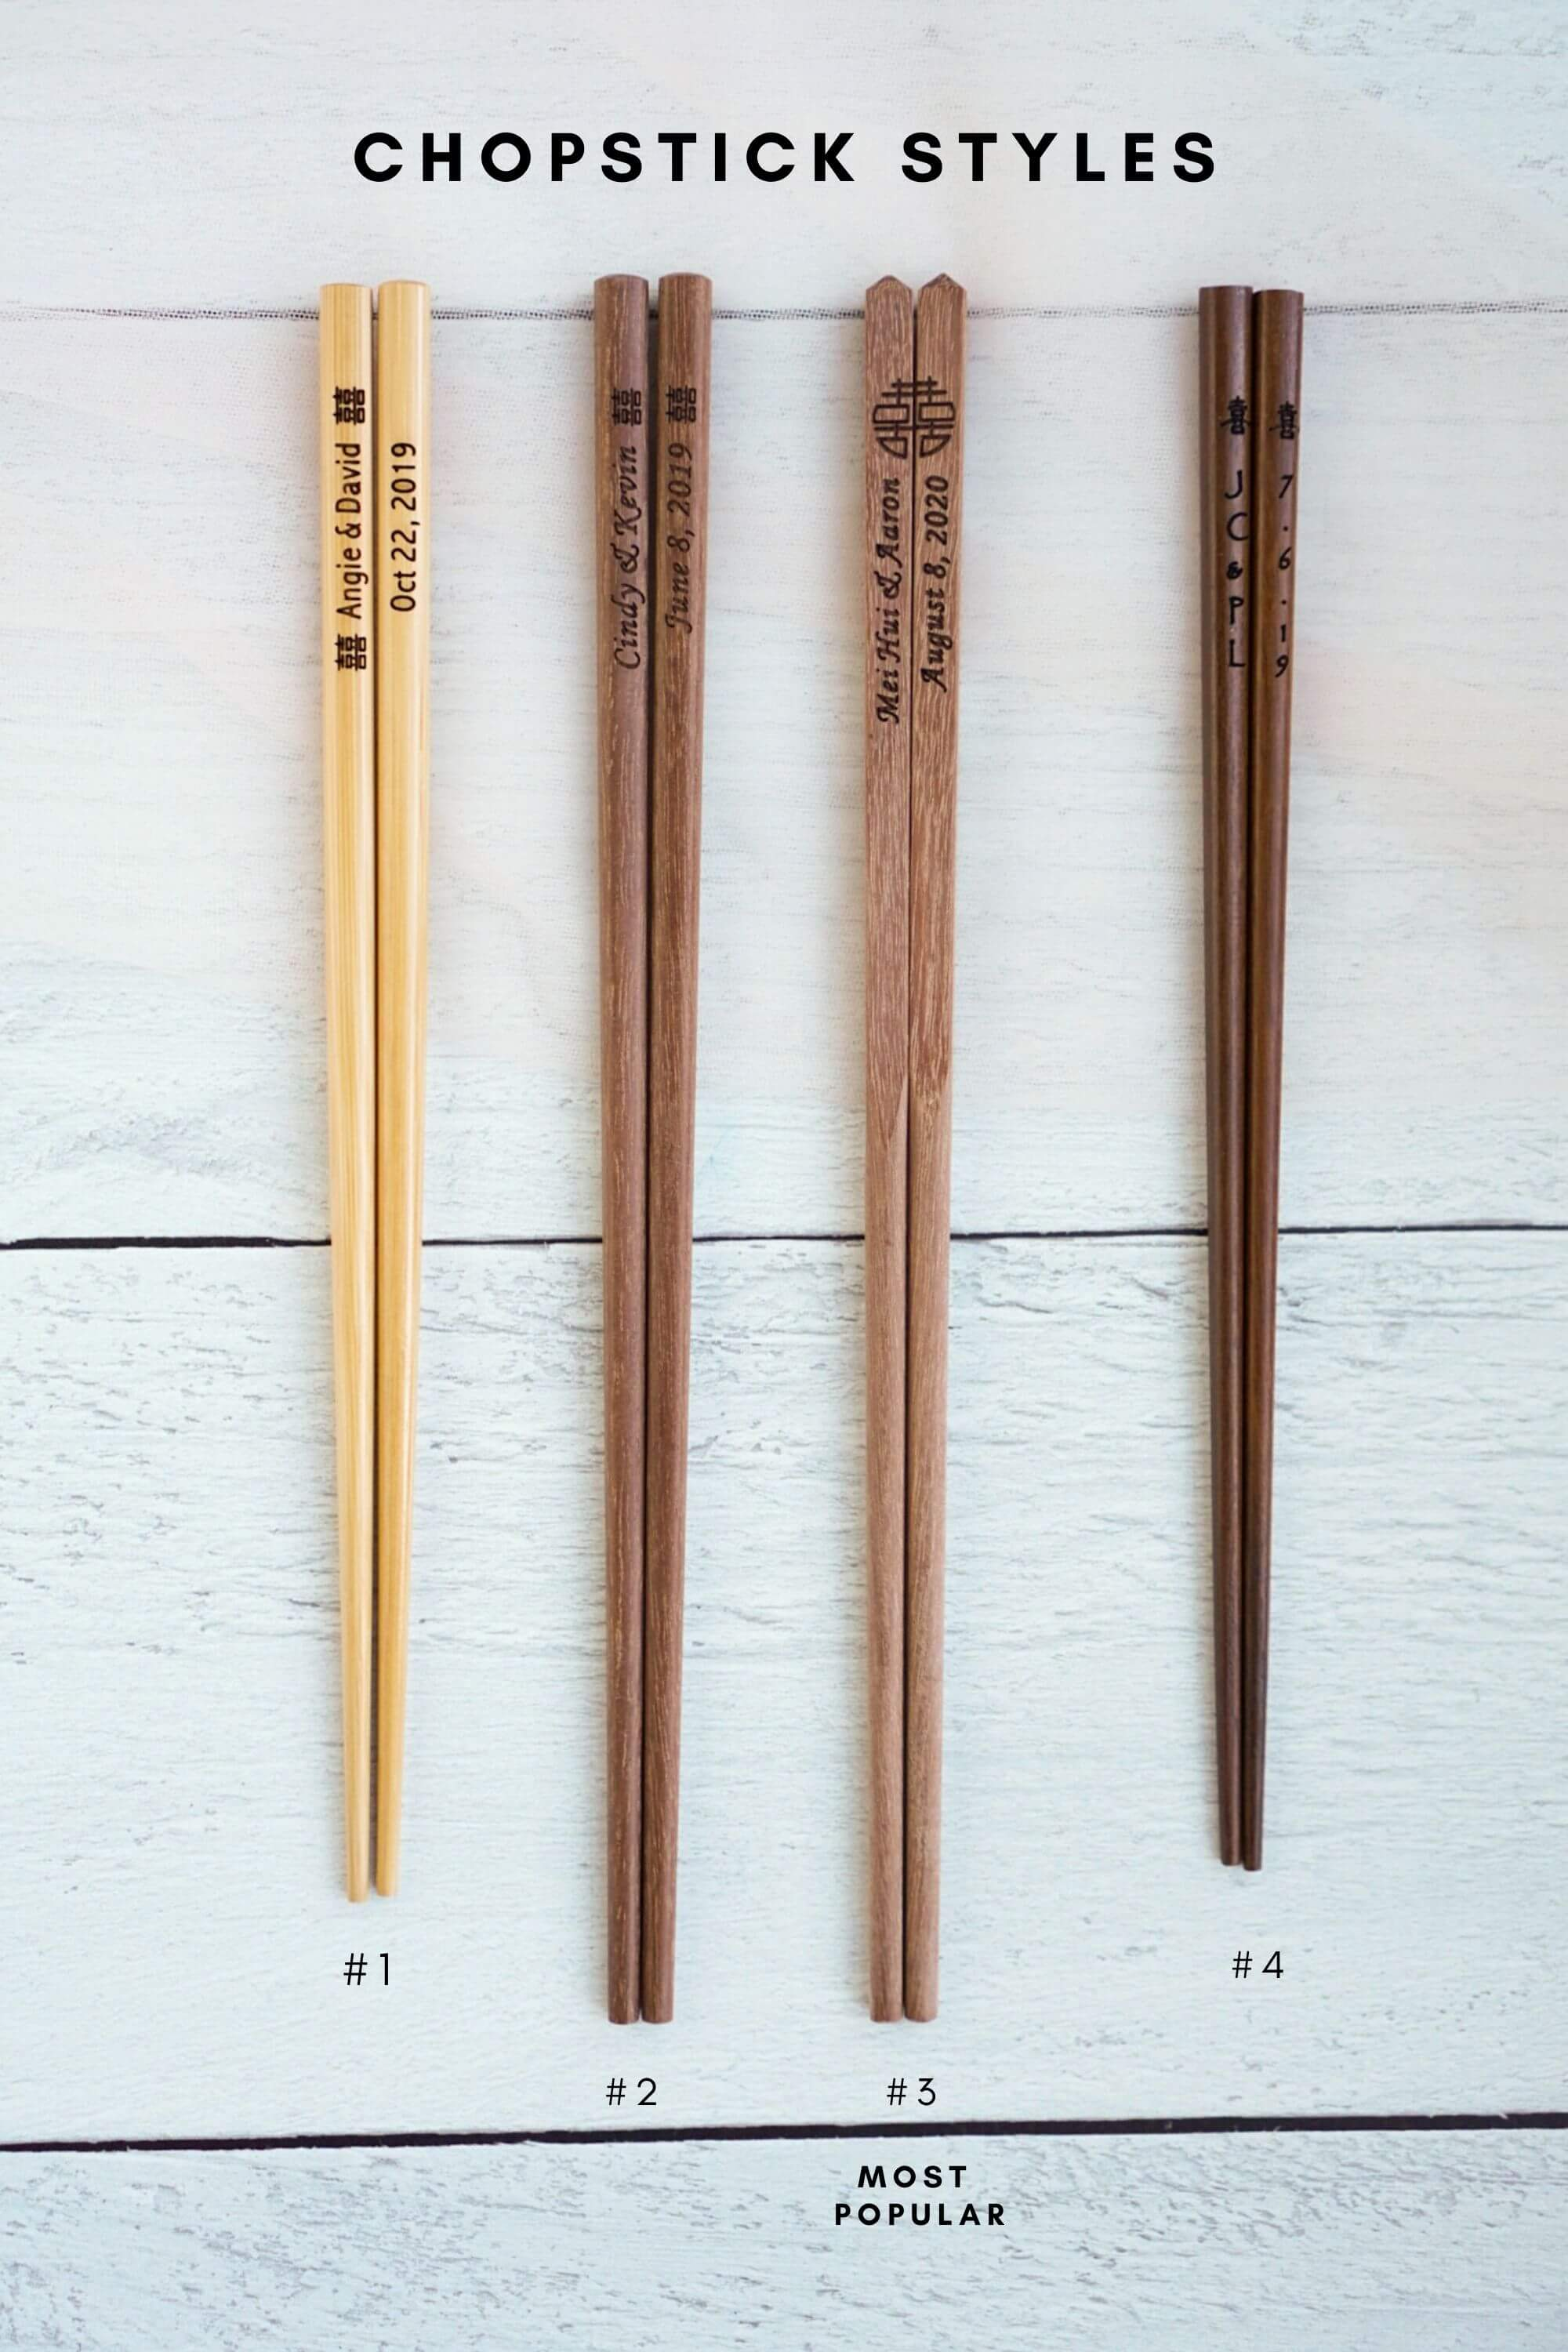 Custom Chopsticks with Silk Slip